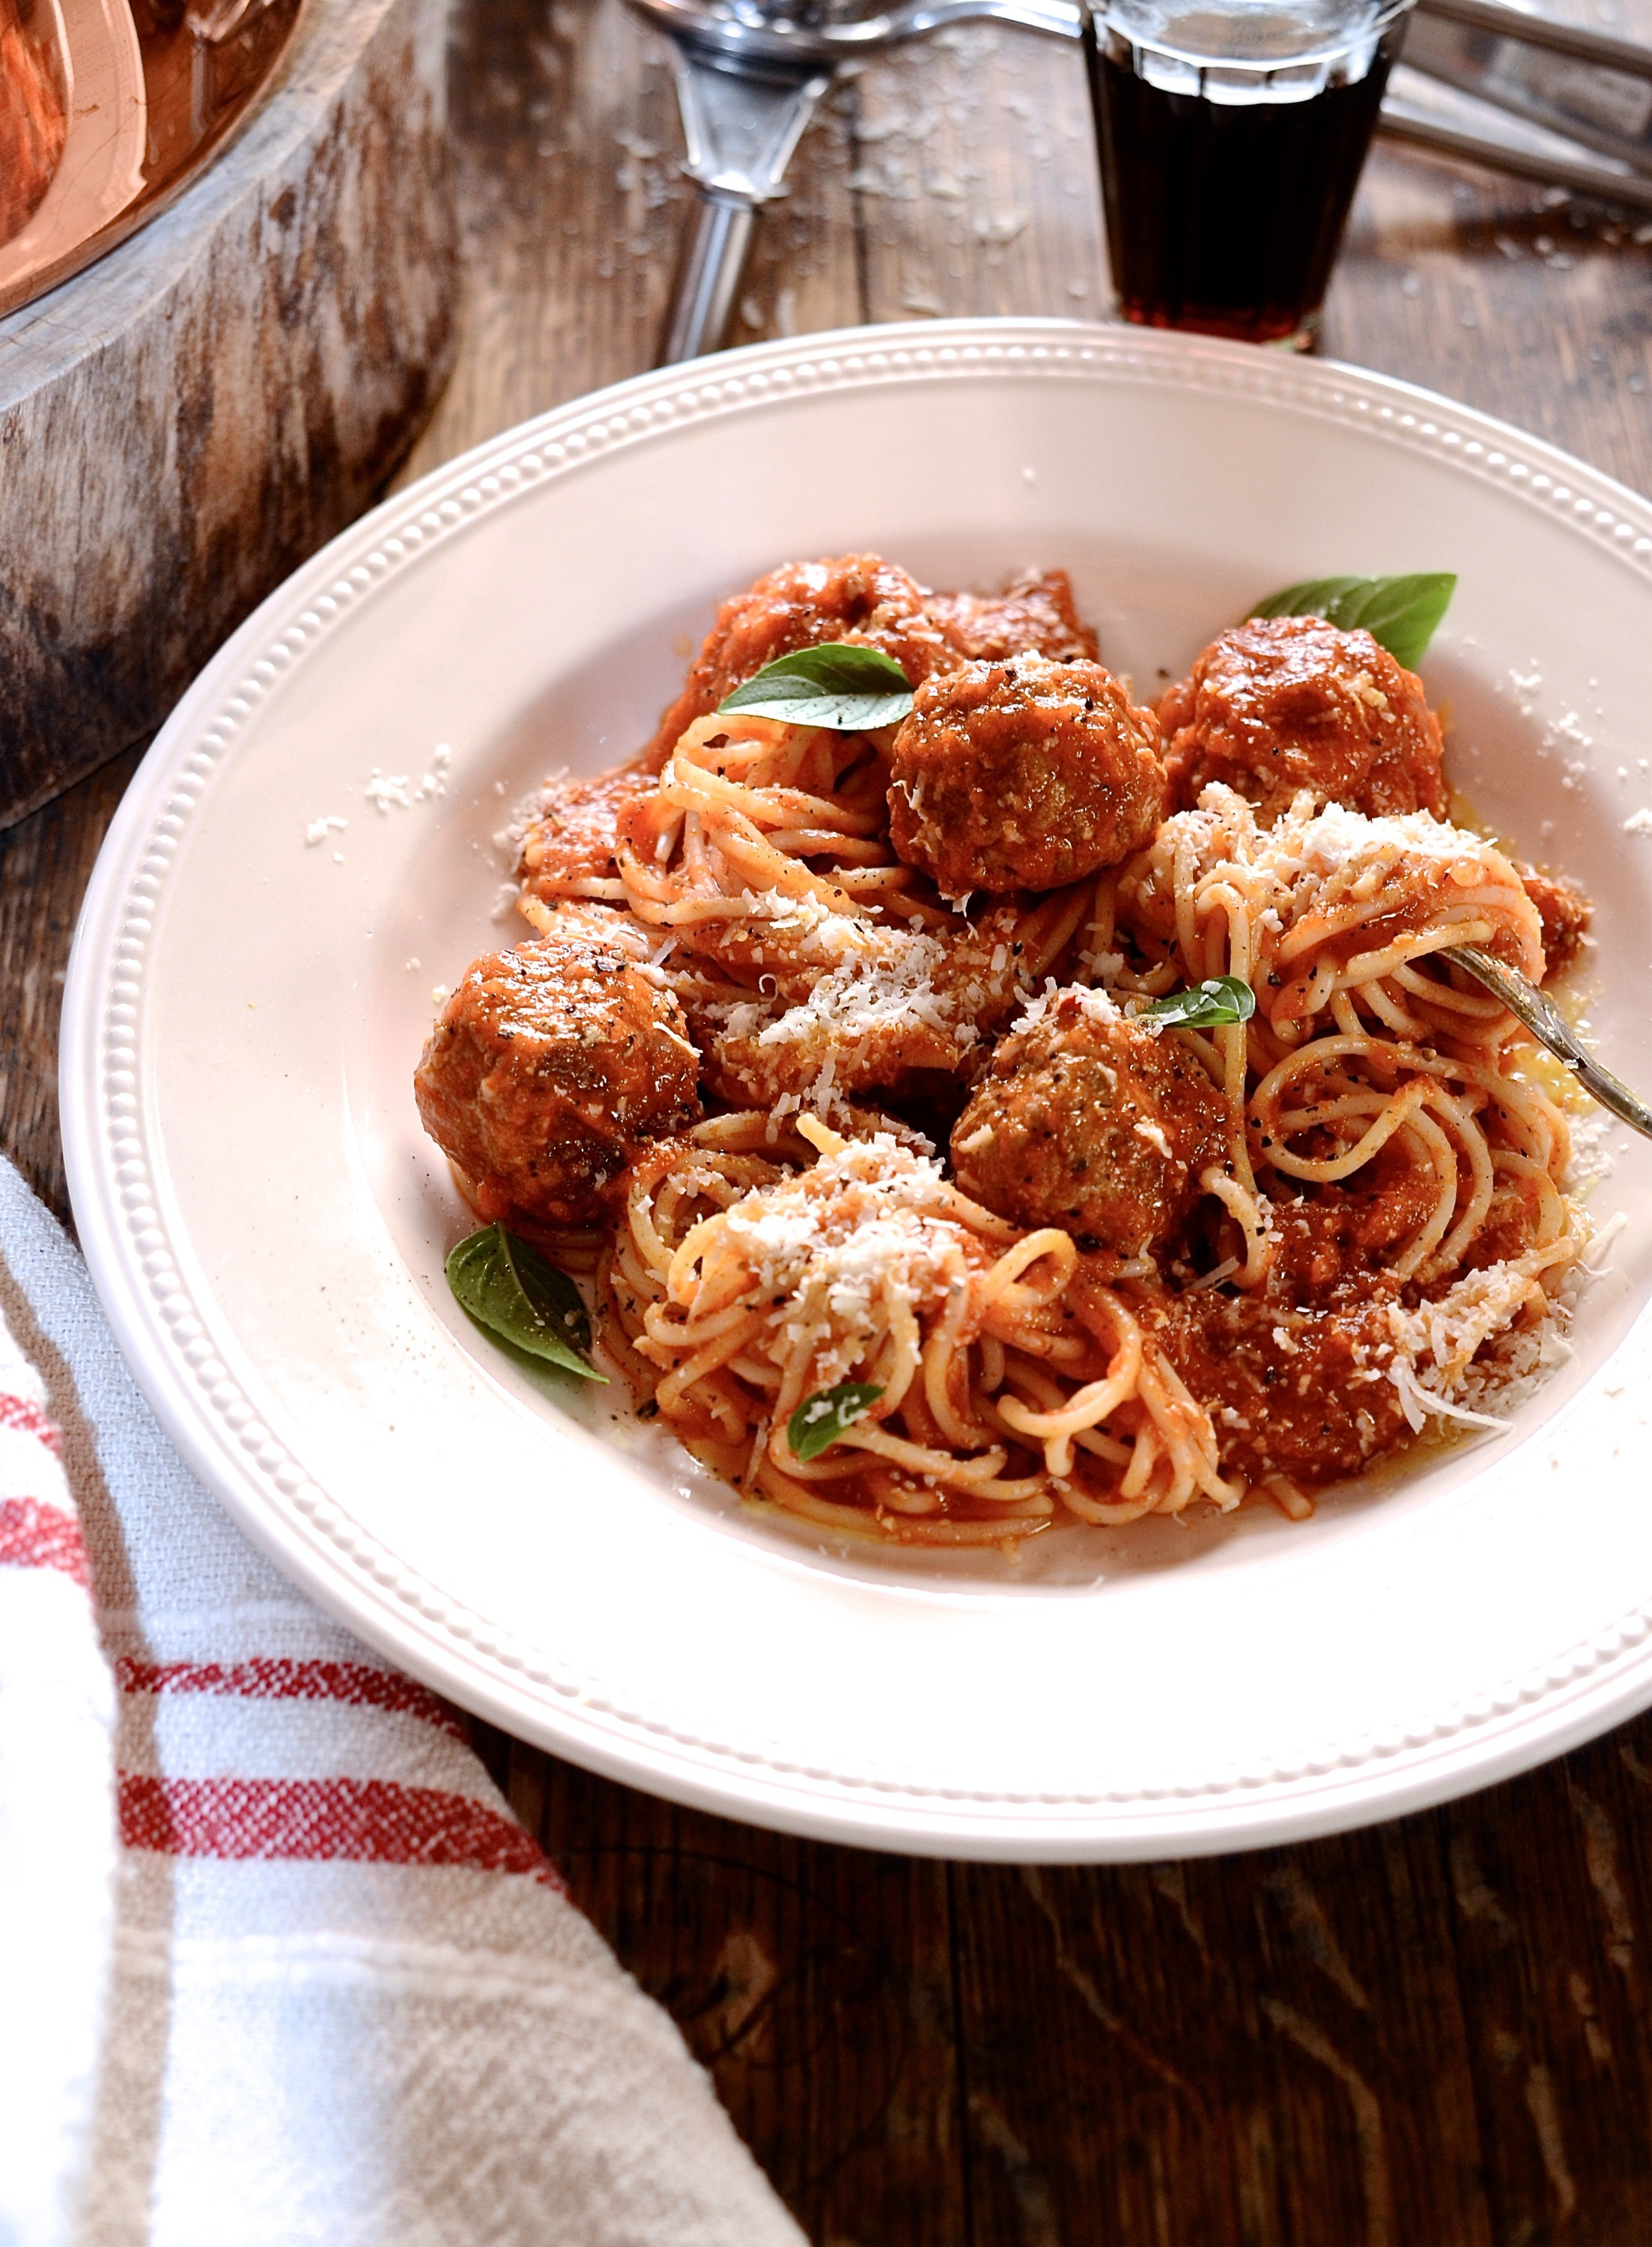 Prosciutto meatballs and spaghetti | Family favourite pasta recipe